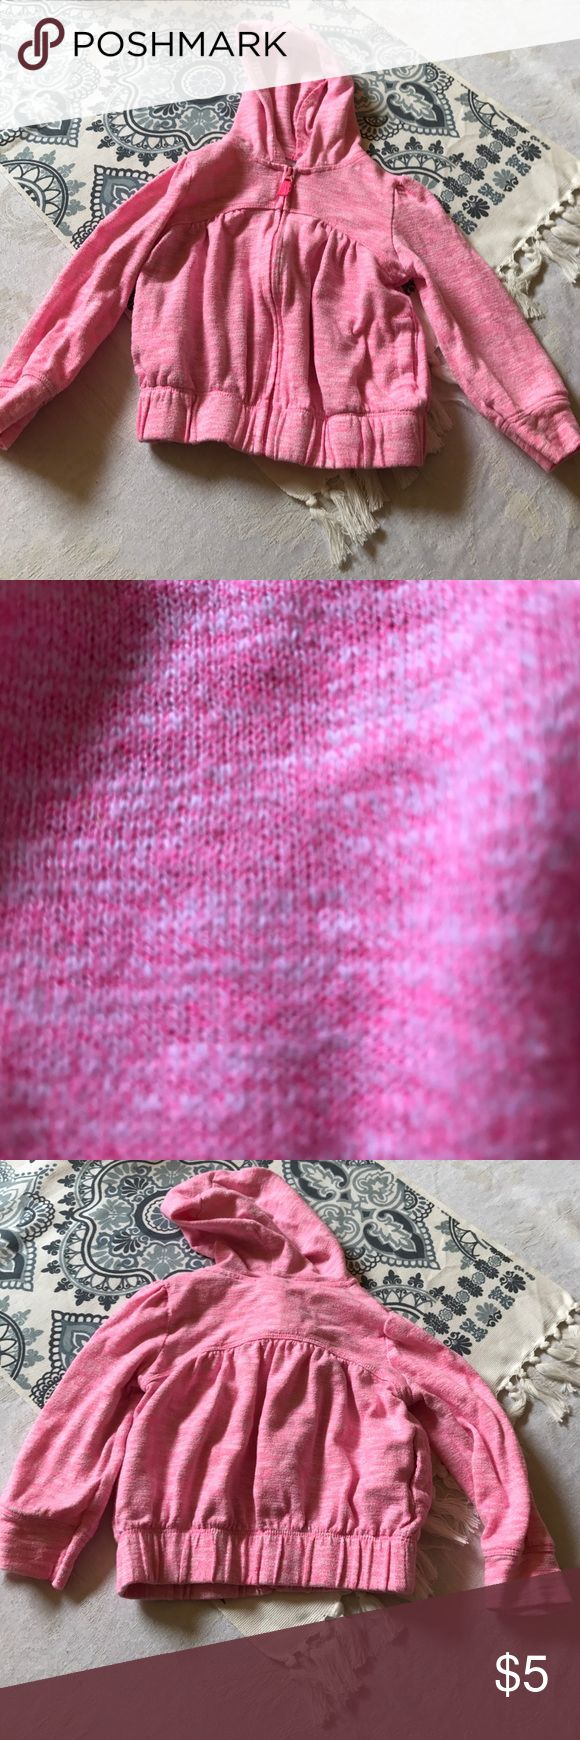 Pink zip up hooded sweatshirt Pink with white zip up sweatshirt, Circo brand 3t girls, elastic at the bottom, excellent condition, close up shoes the detail of the pattern Circo Jackets & Coats